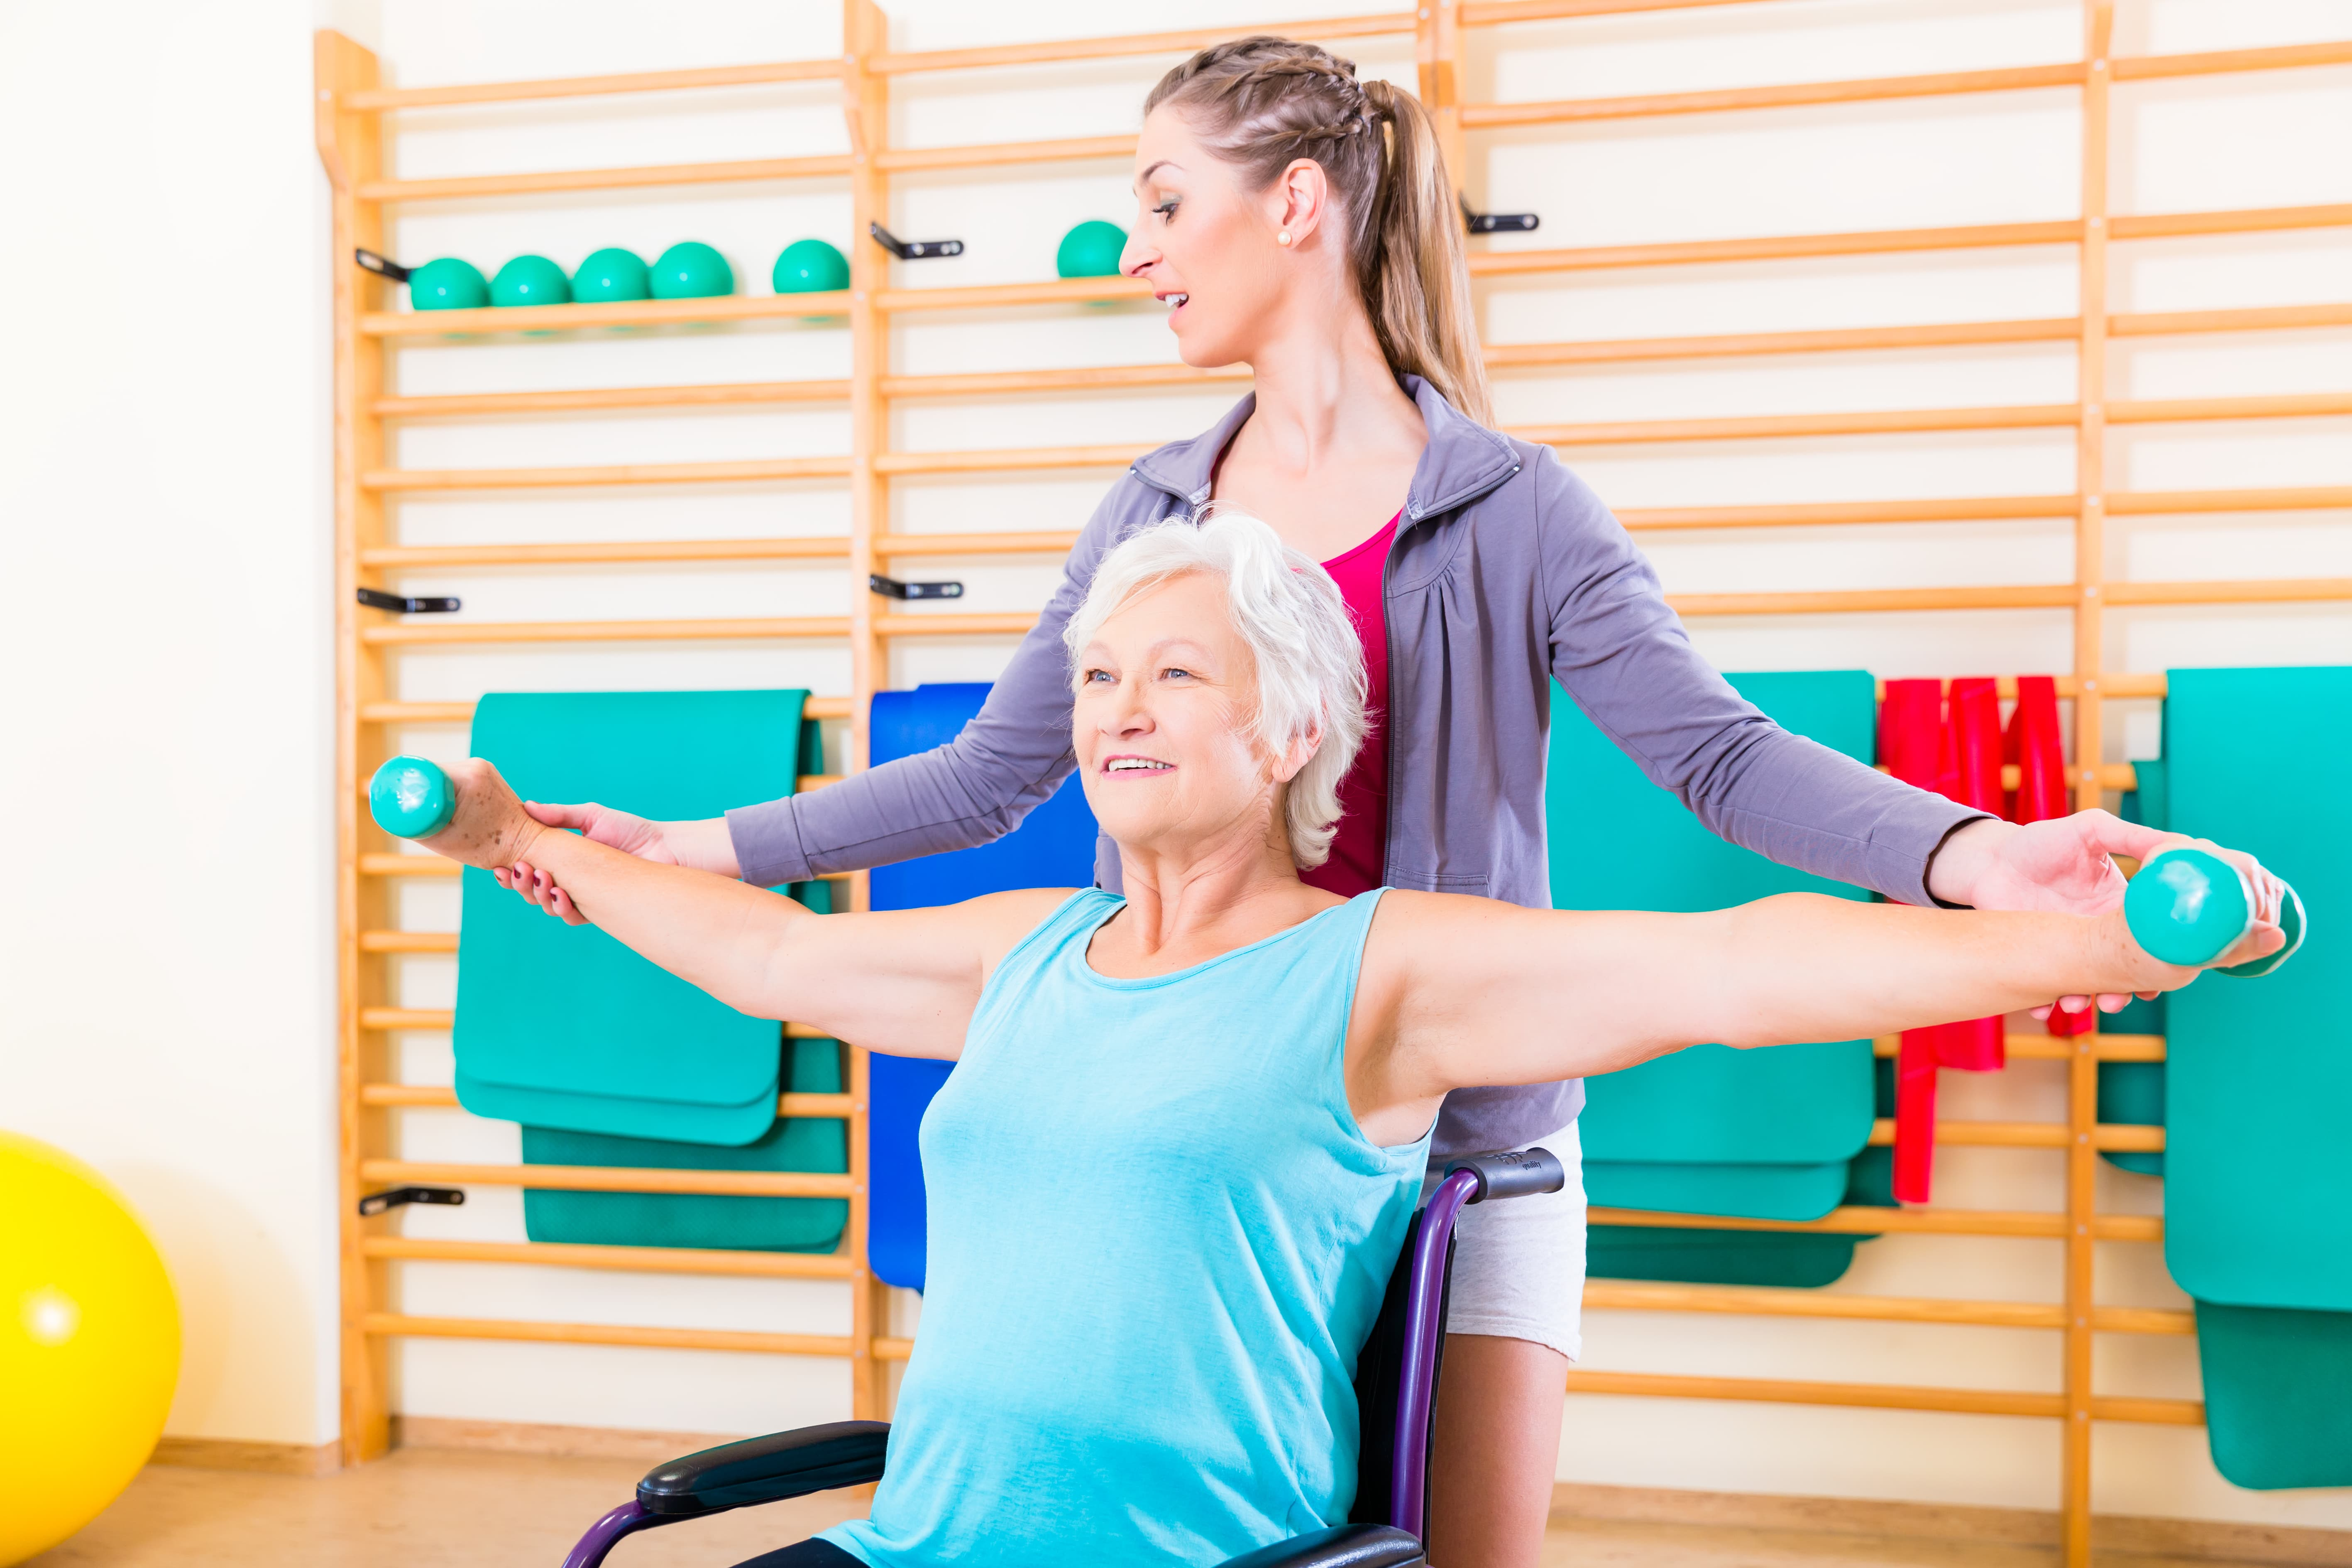 caregiver guiding senior woman exercise